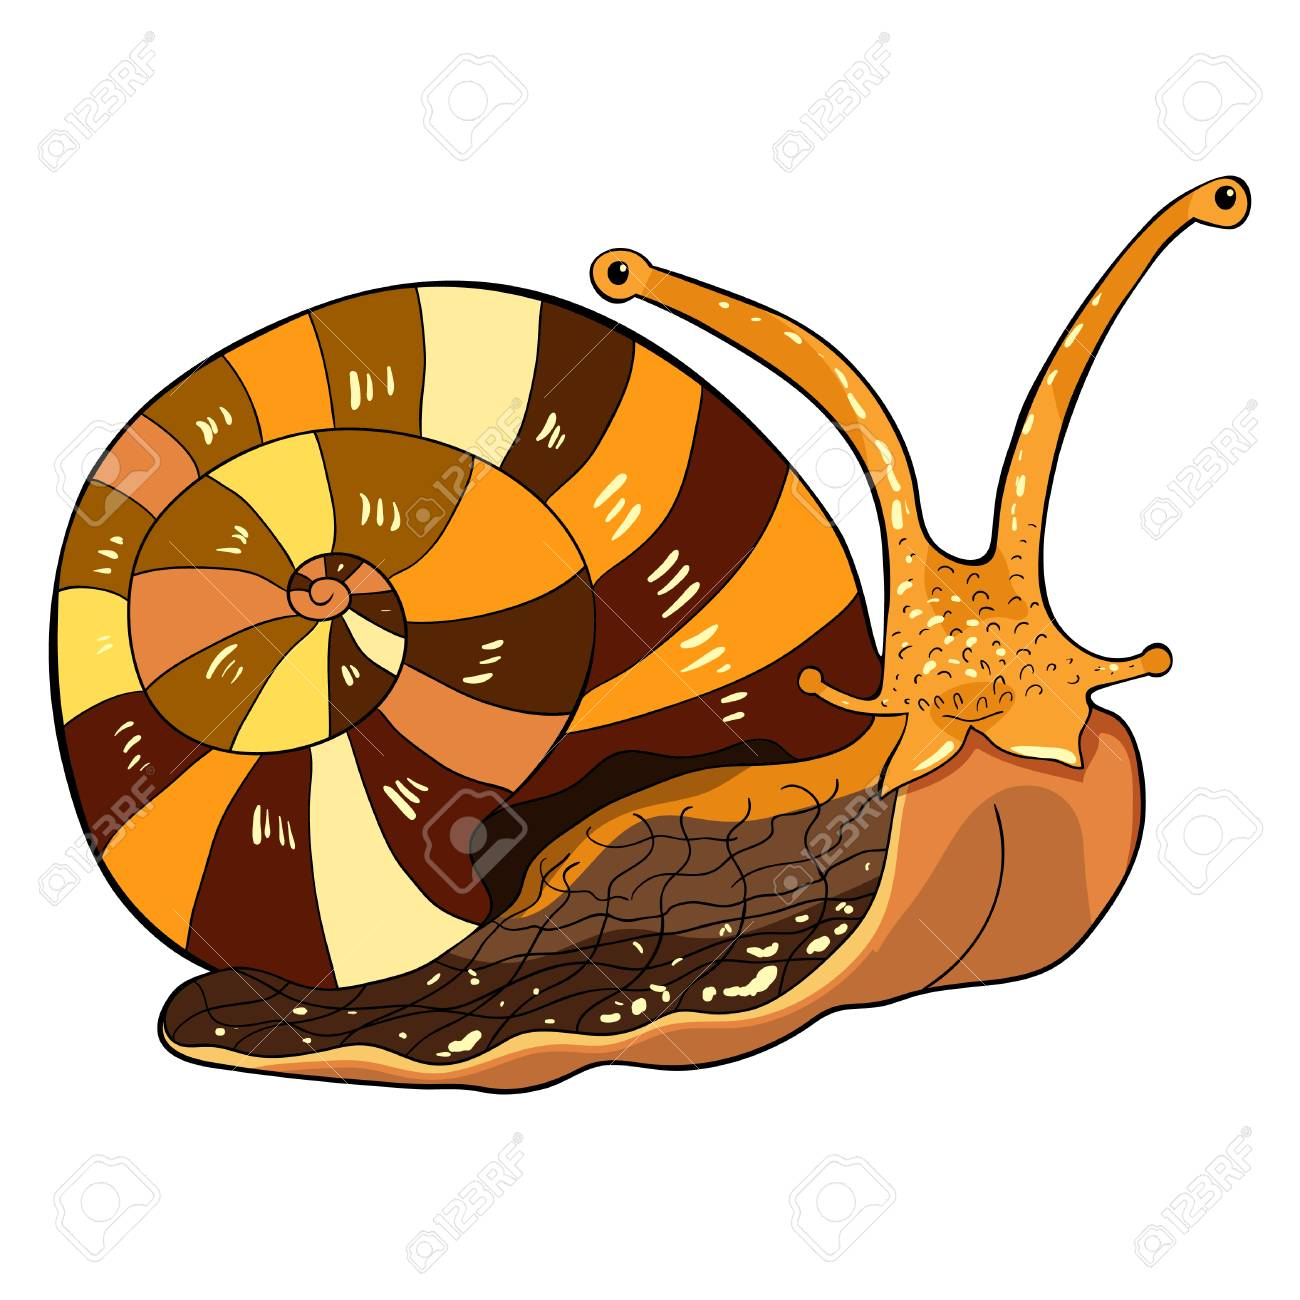 the insect snail gastropod mollusk vector illustration royalty free